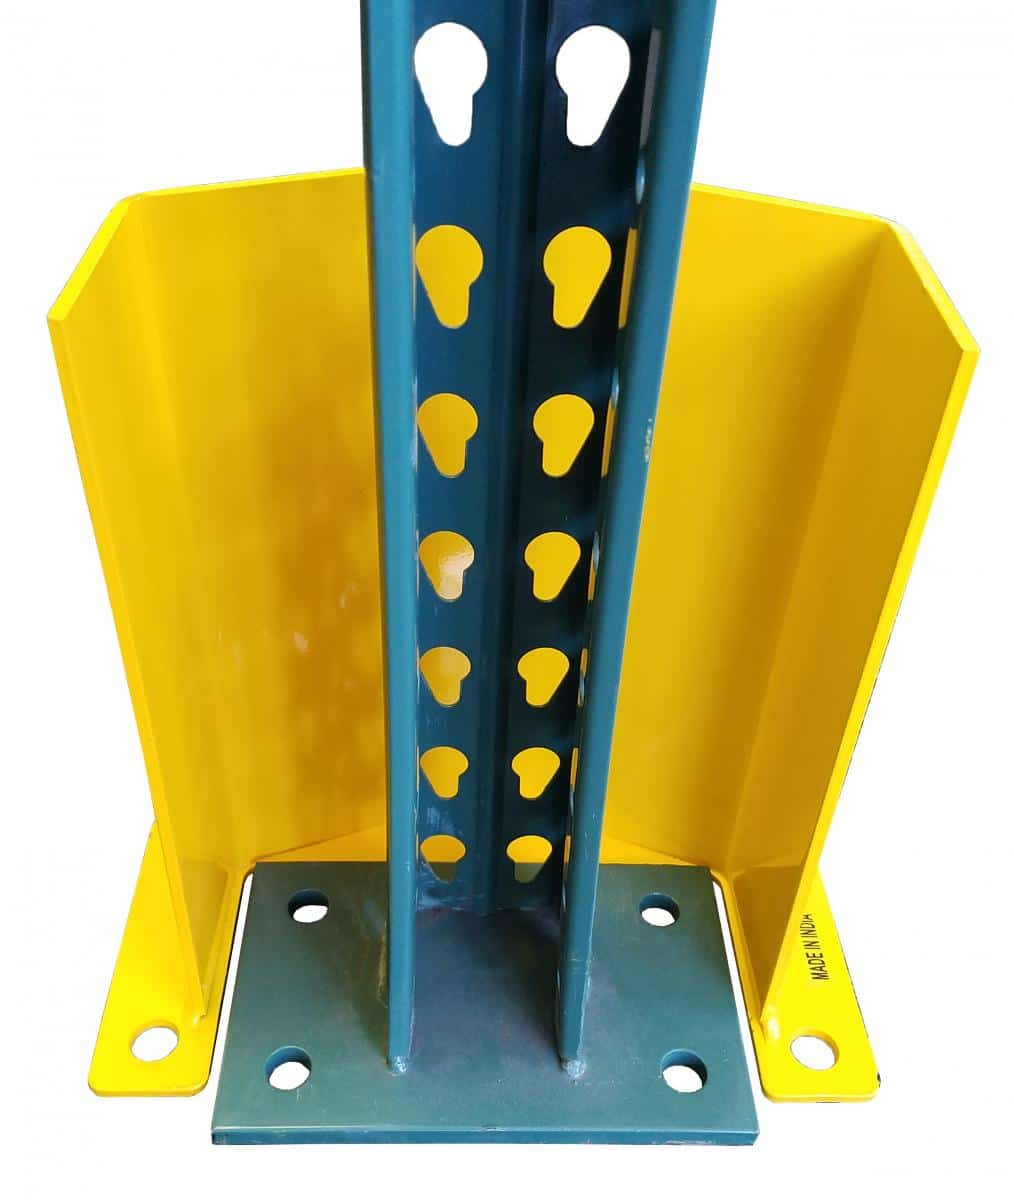 P12-8 Post Upright Guard wide for oversize footplates 8.5